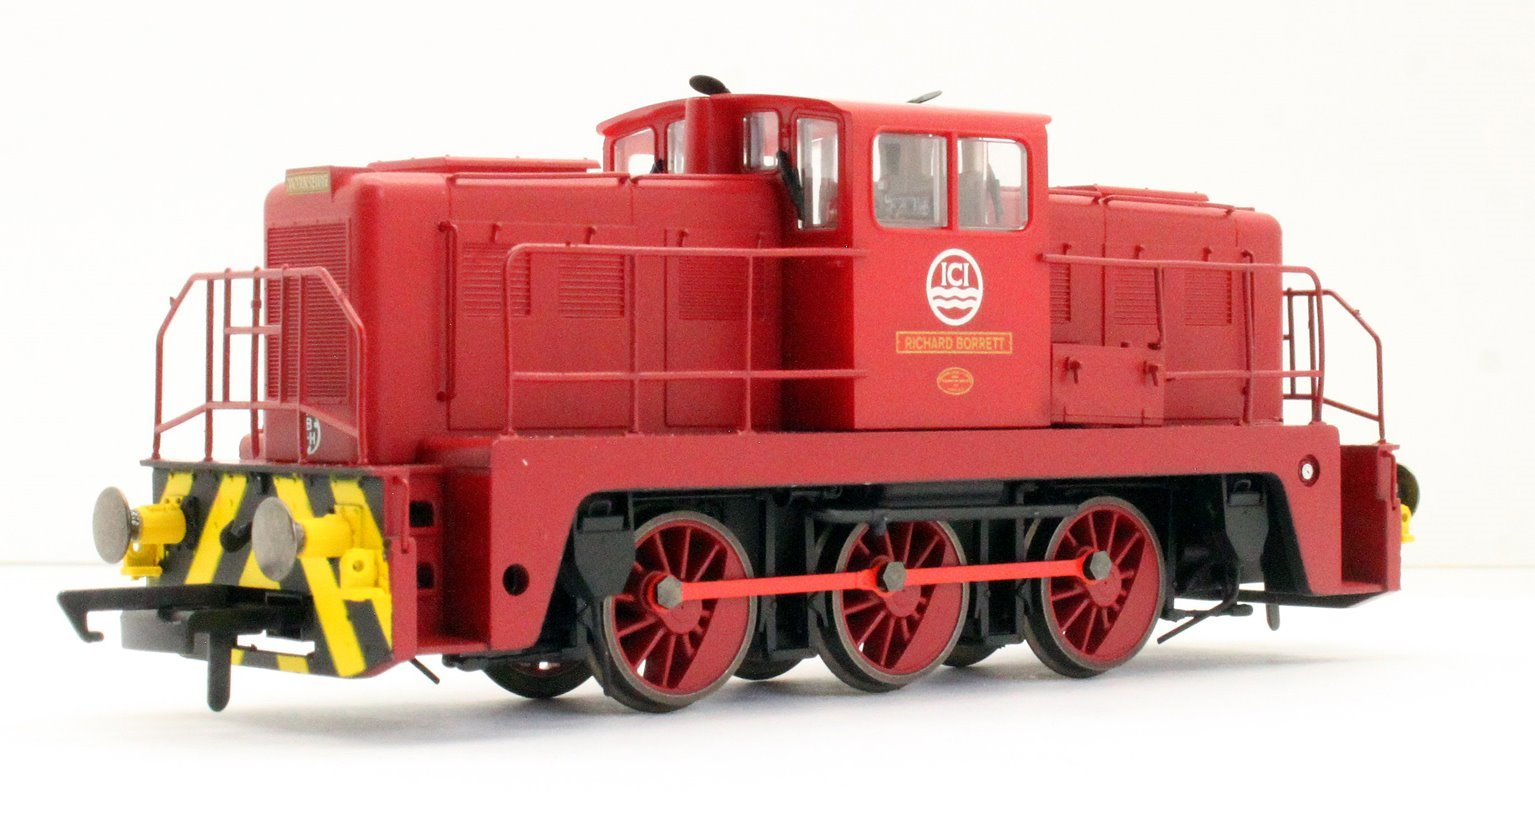 "YEC Janus 0-6-0DE shunter ""Richard Borrett"" in ICI maroon"